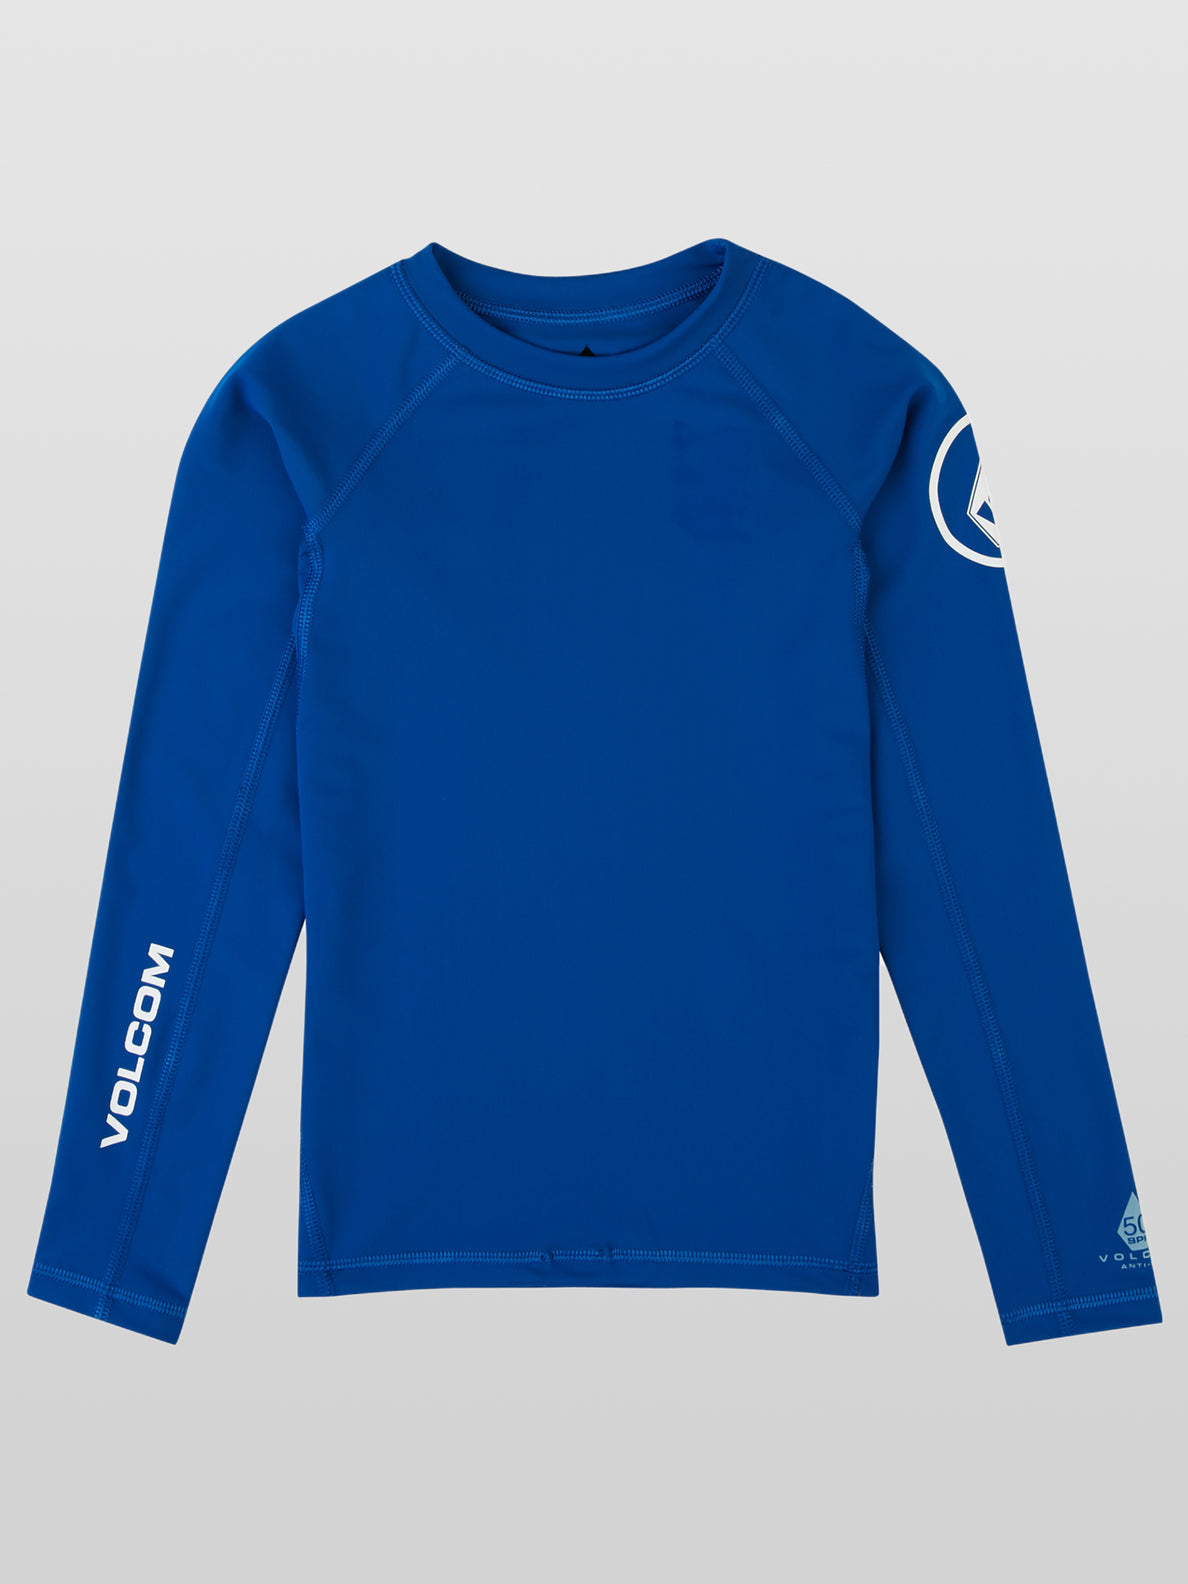 Little Boys Lido Solid Long Sleeve Rashguard